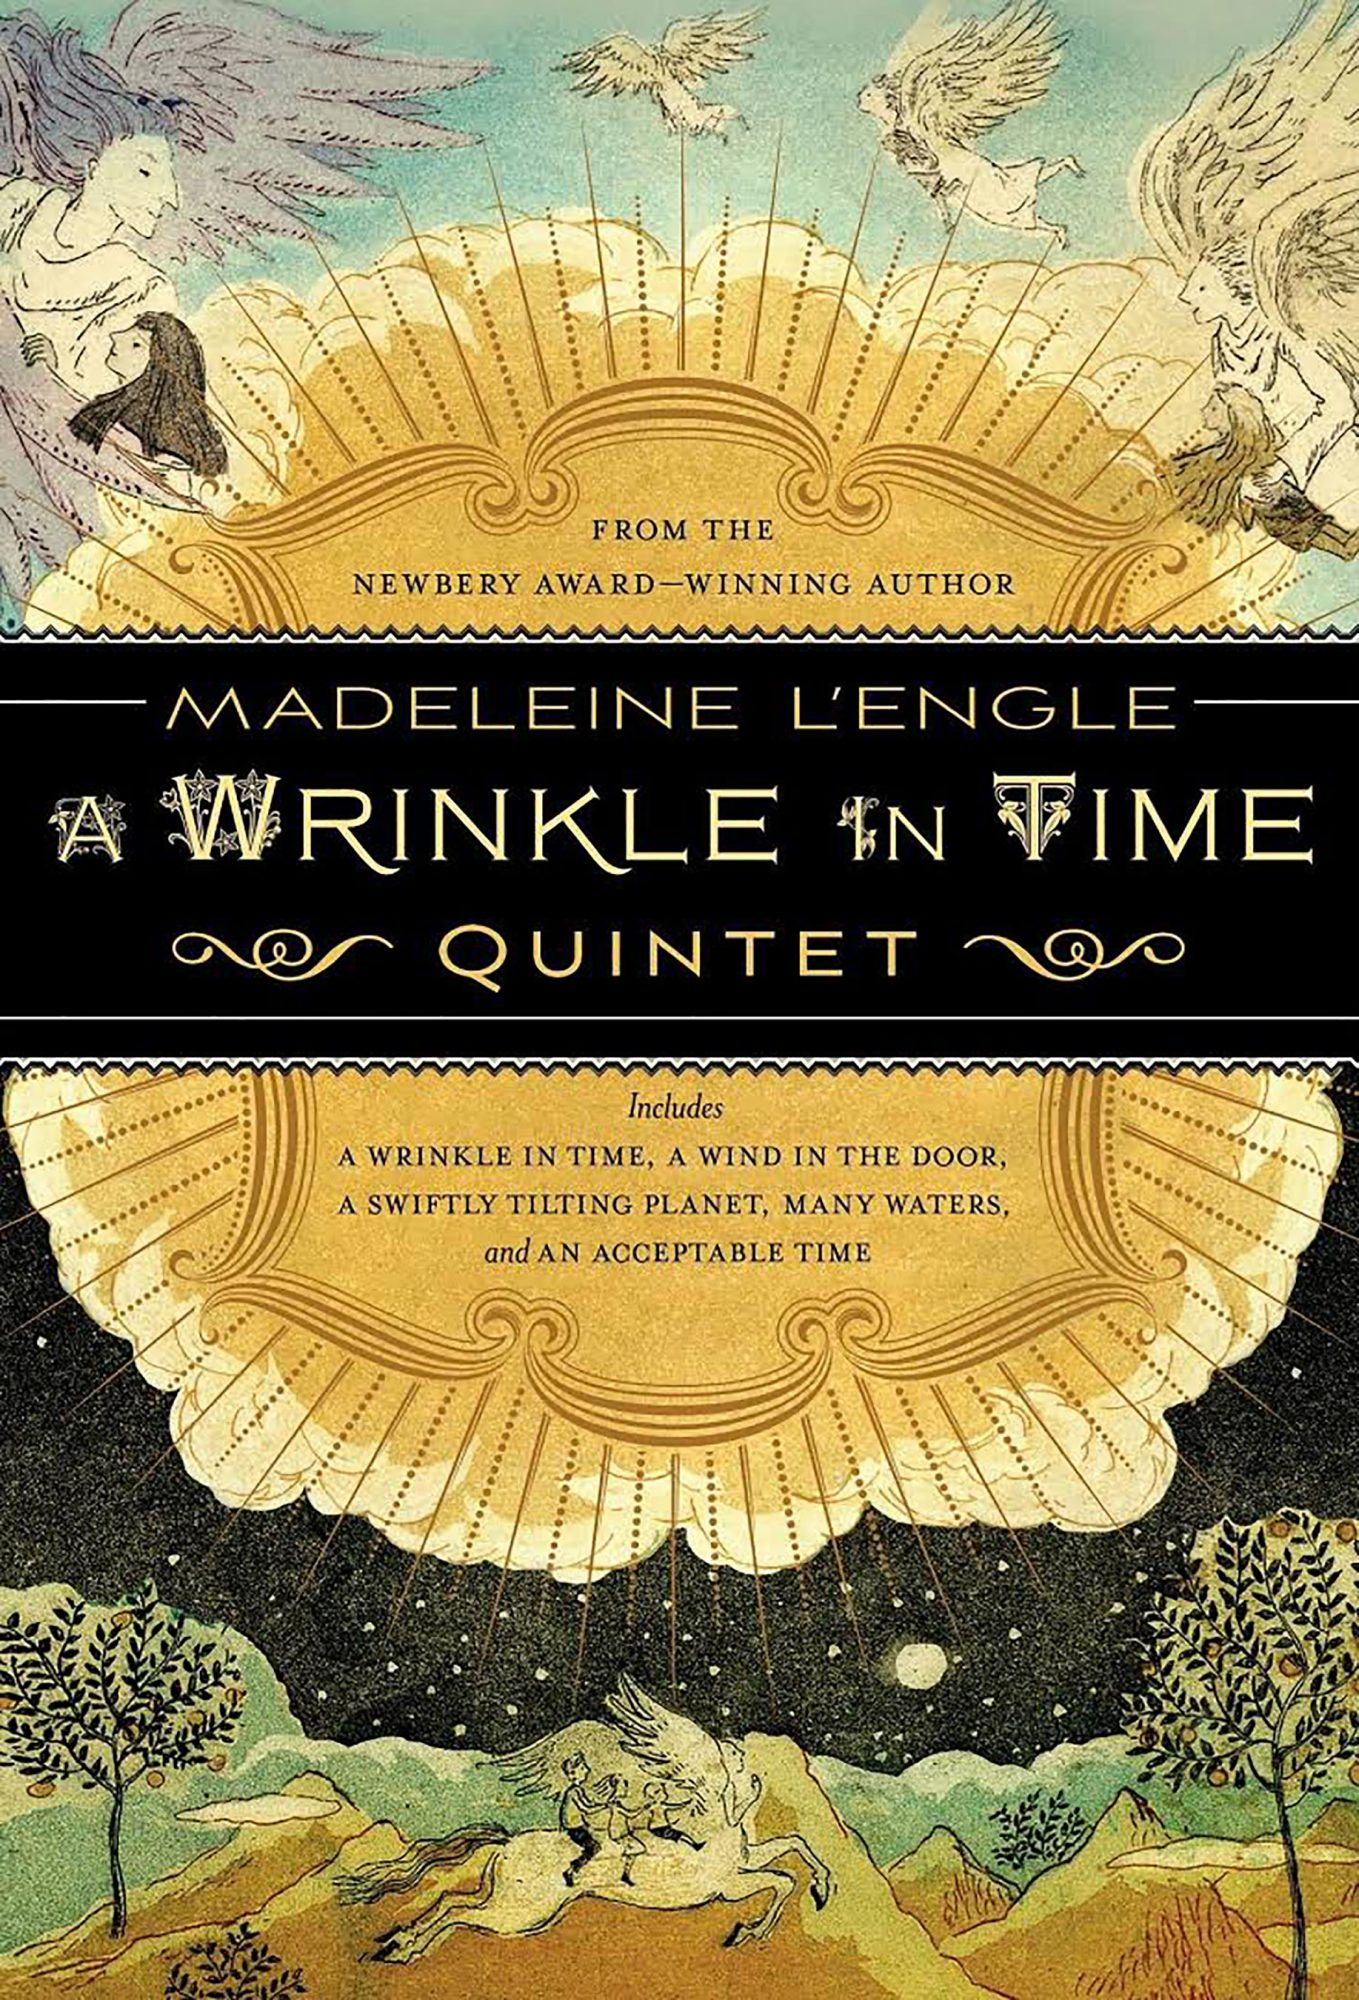 A Wrinkle in Time by Madeleine L'Engle CR: Farrar Straus Giroux